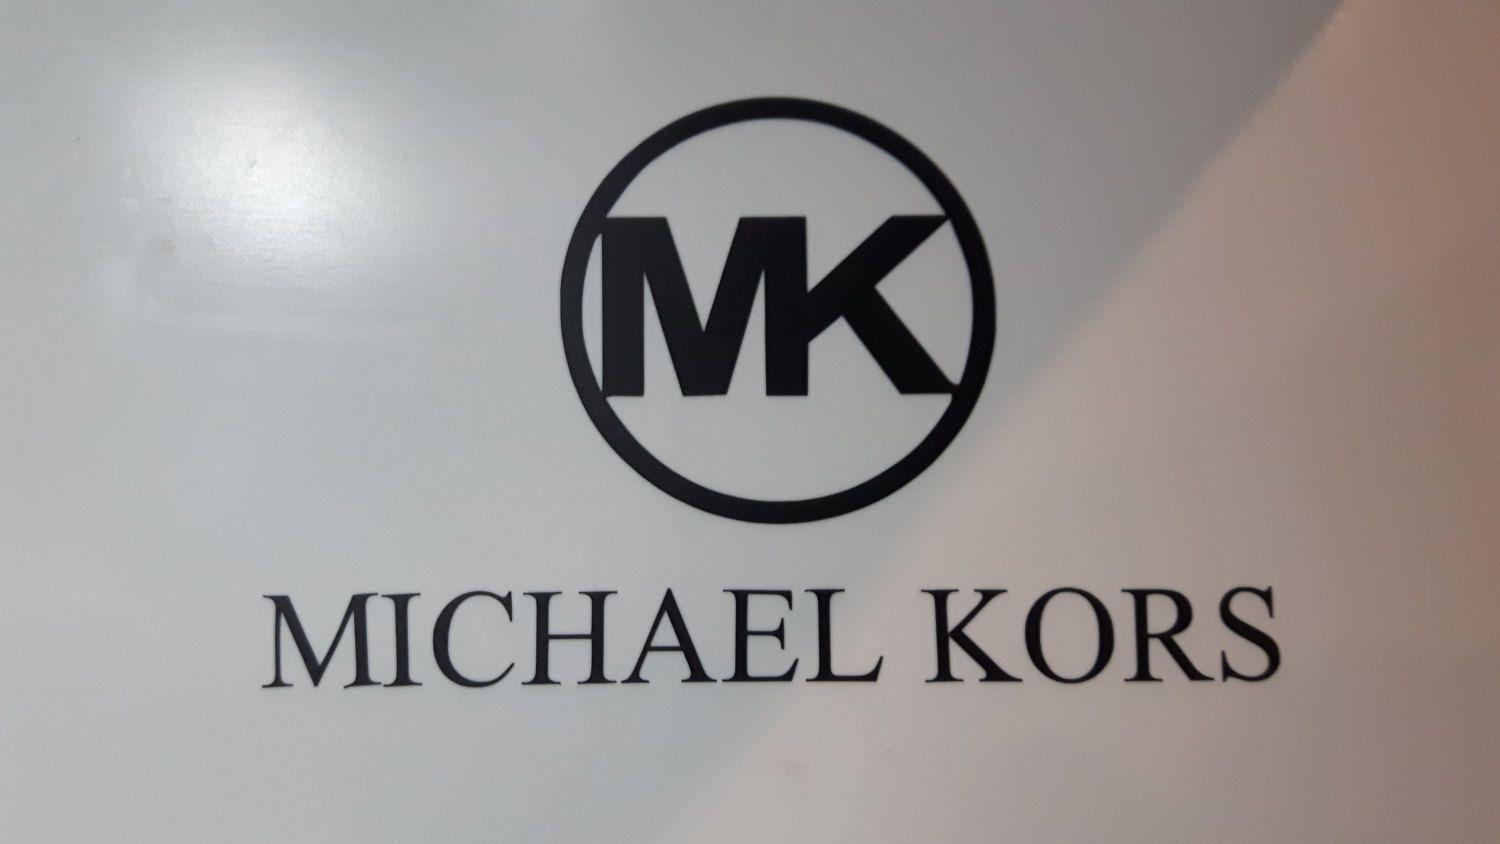 Michael Kors Wallpaper For